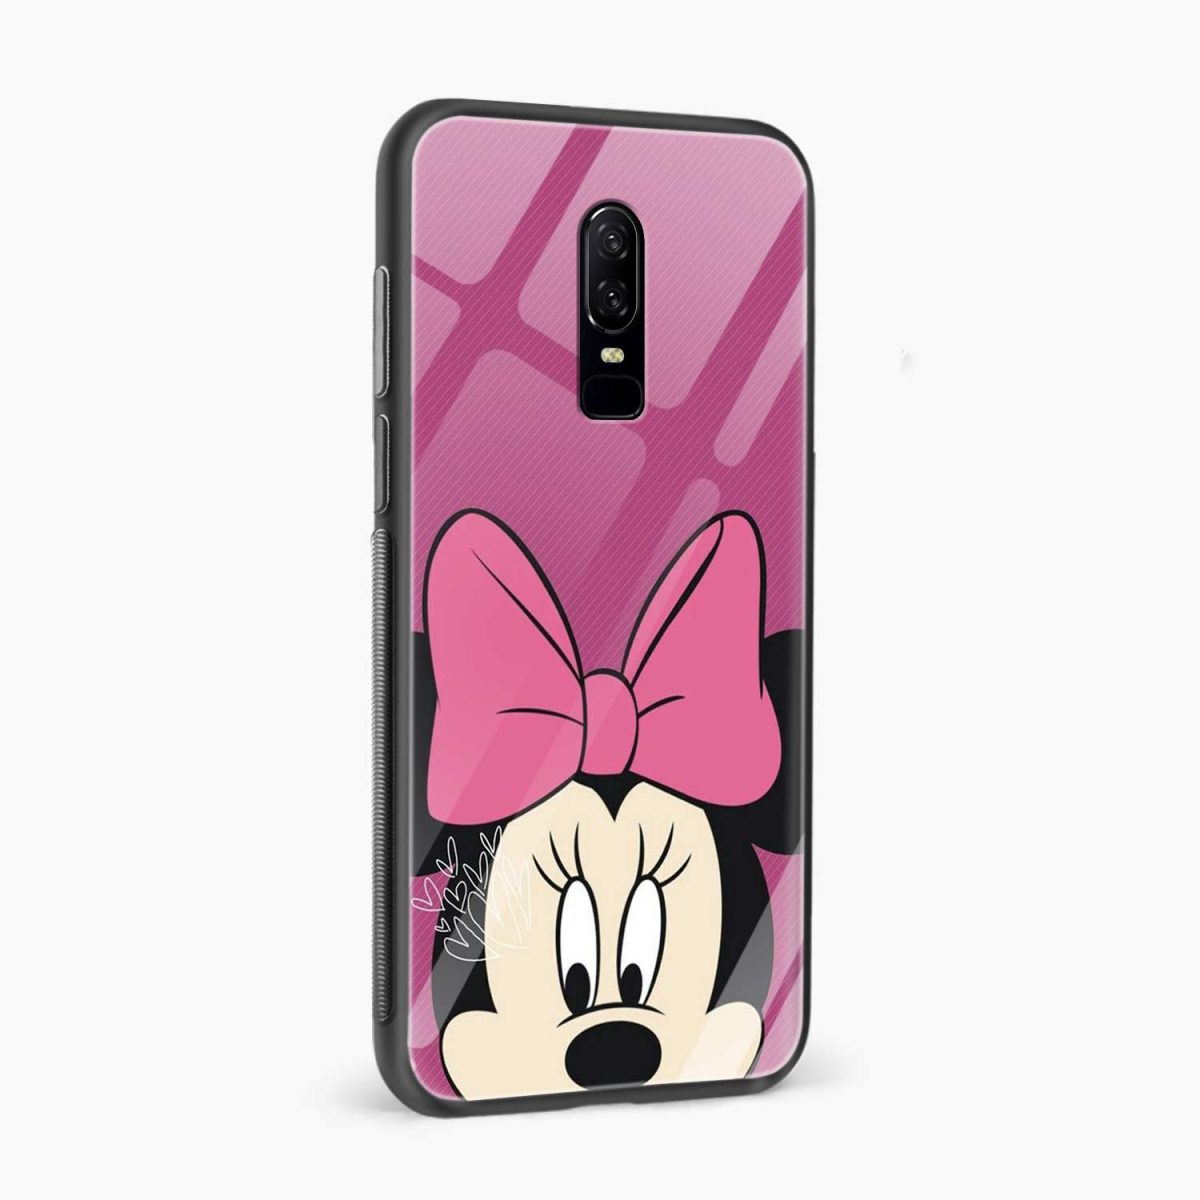 mini mouse side view oneplus 6 back cover 1